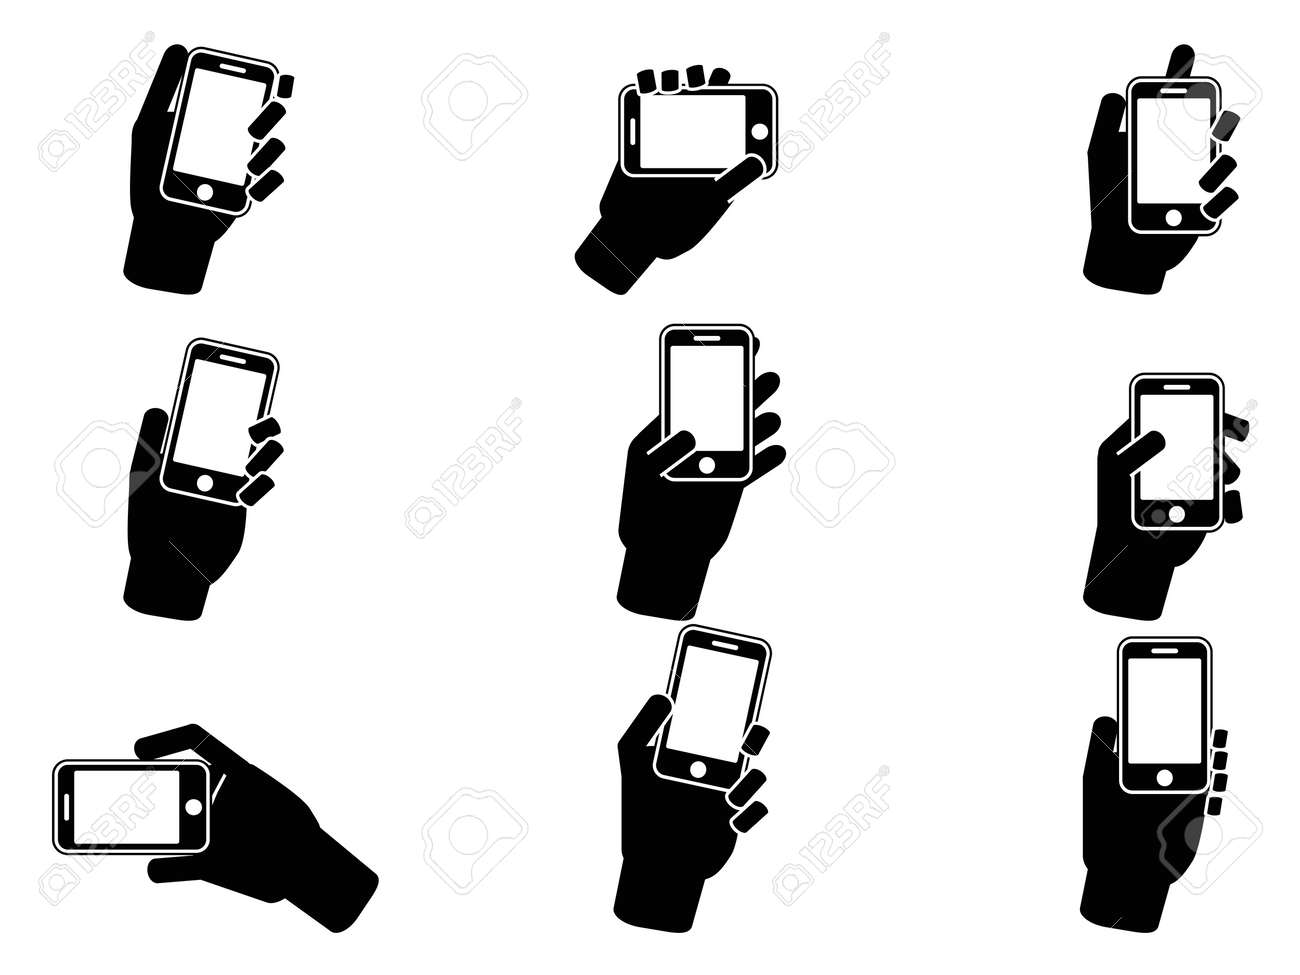 isolated hand holding smartphone icons from white background Stock Vector - 18171887